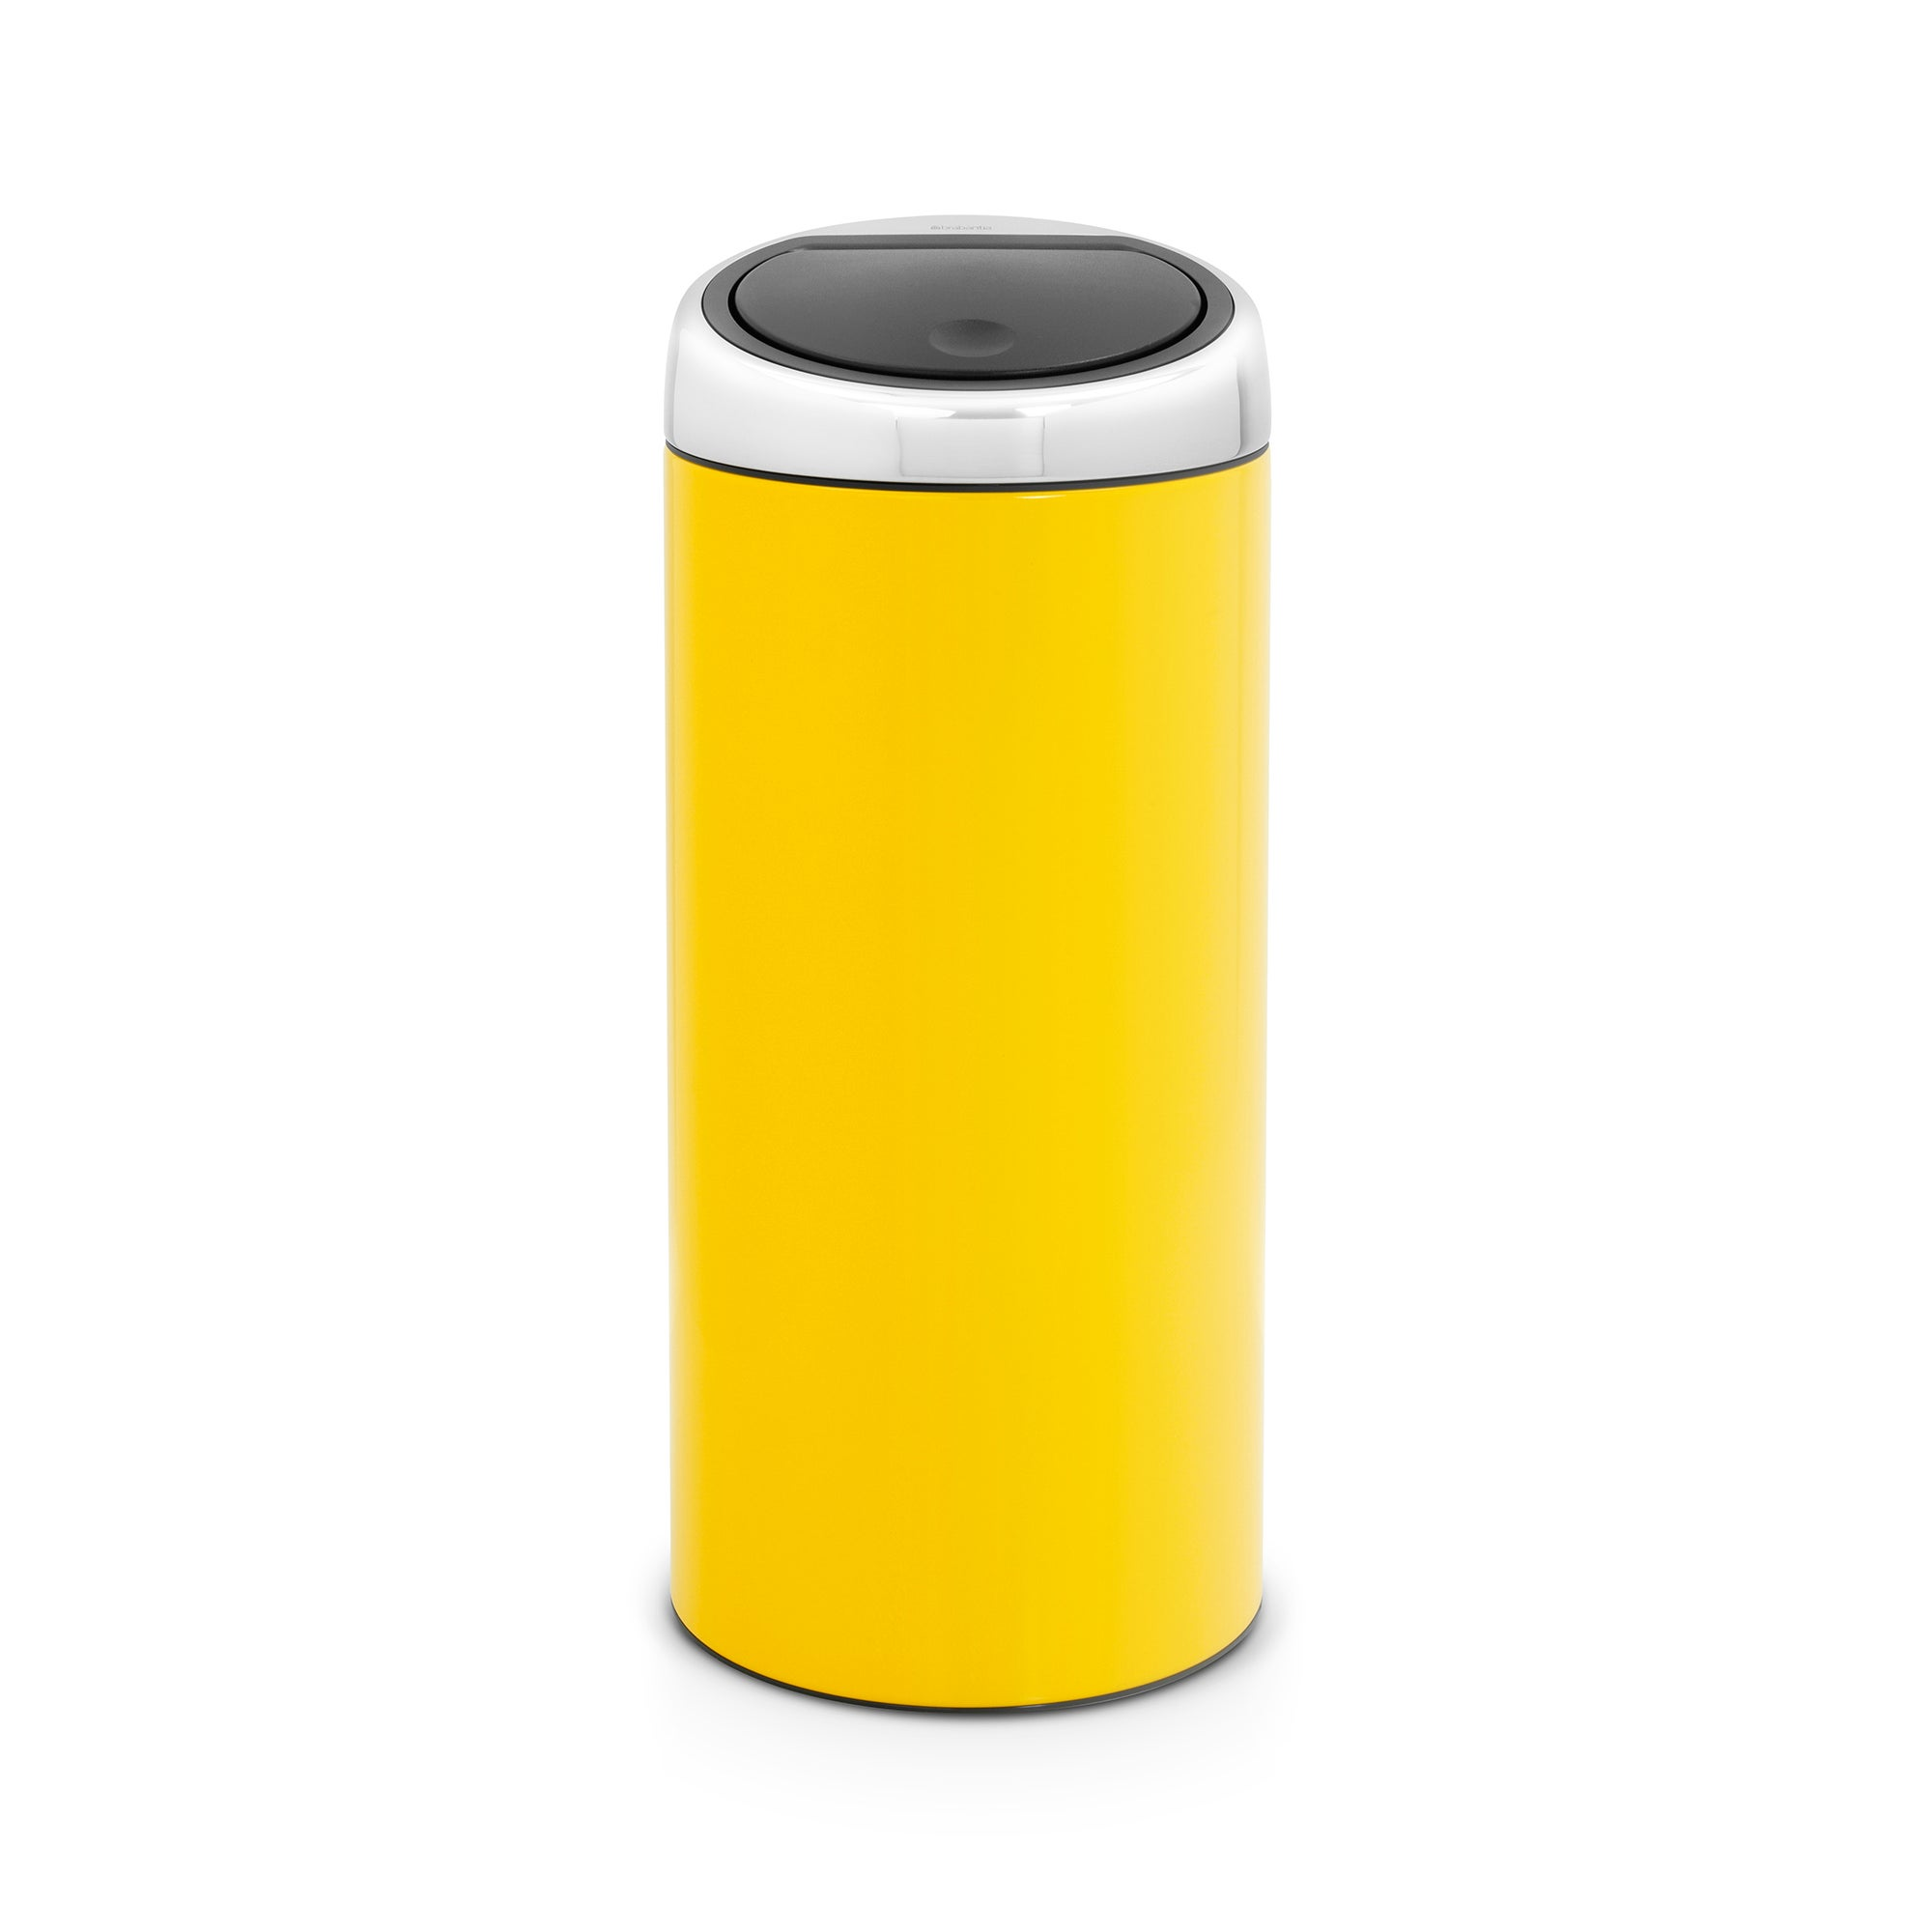 Brabantia Yellow 30 Litre Lacquered Steel Touch Bin